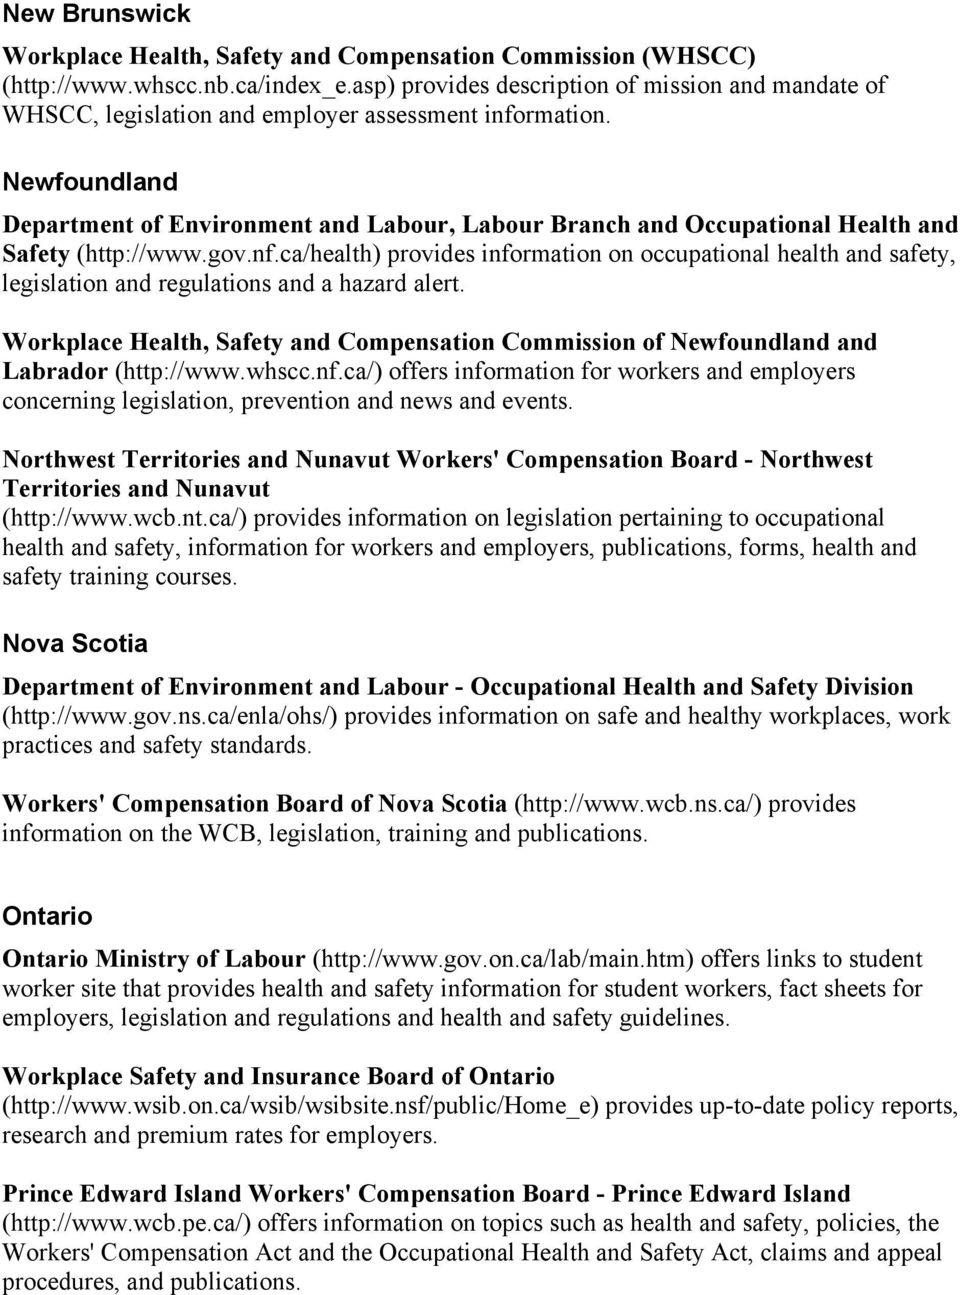 Newfoundland Department of Environment and Labour, Labour Branch and Occupational Health and Safety (http://www.gov.nf.